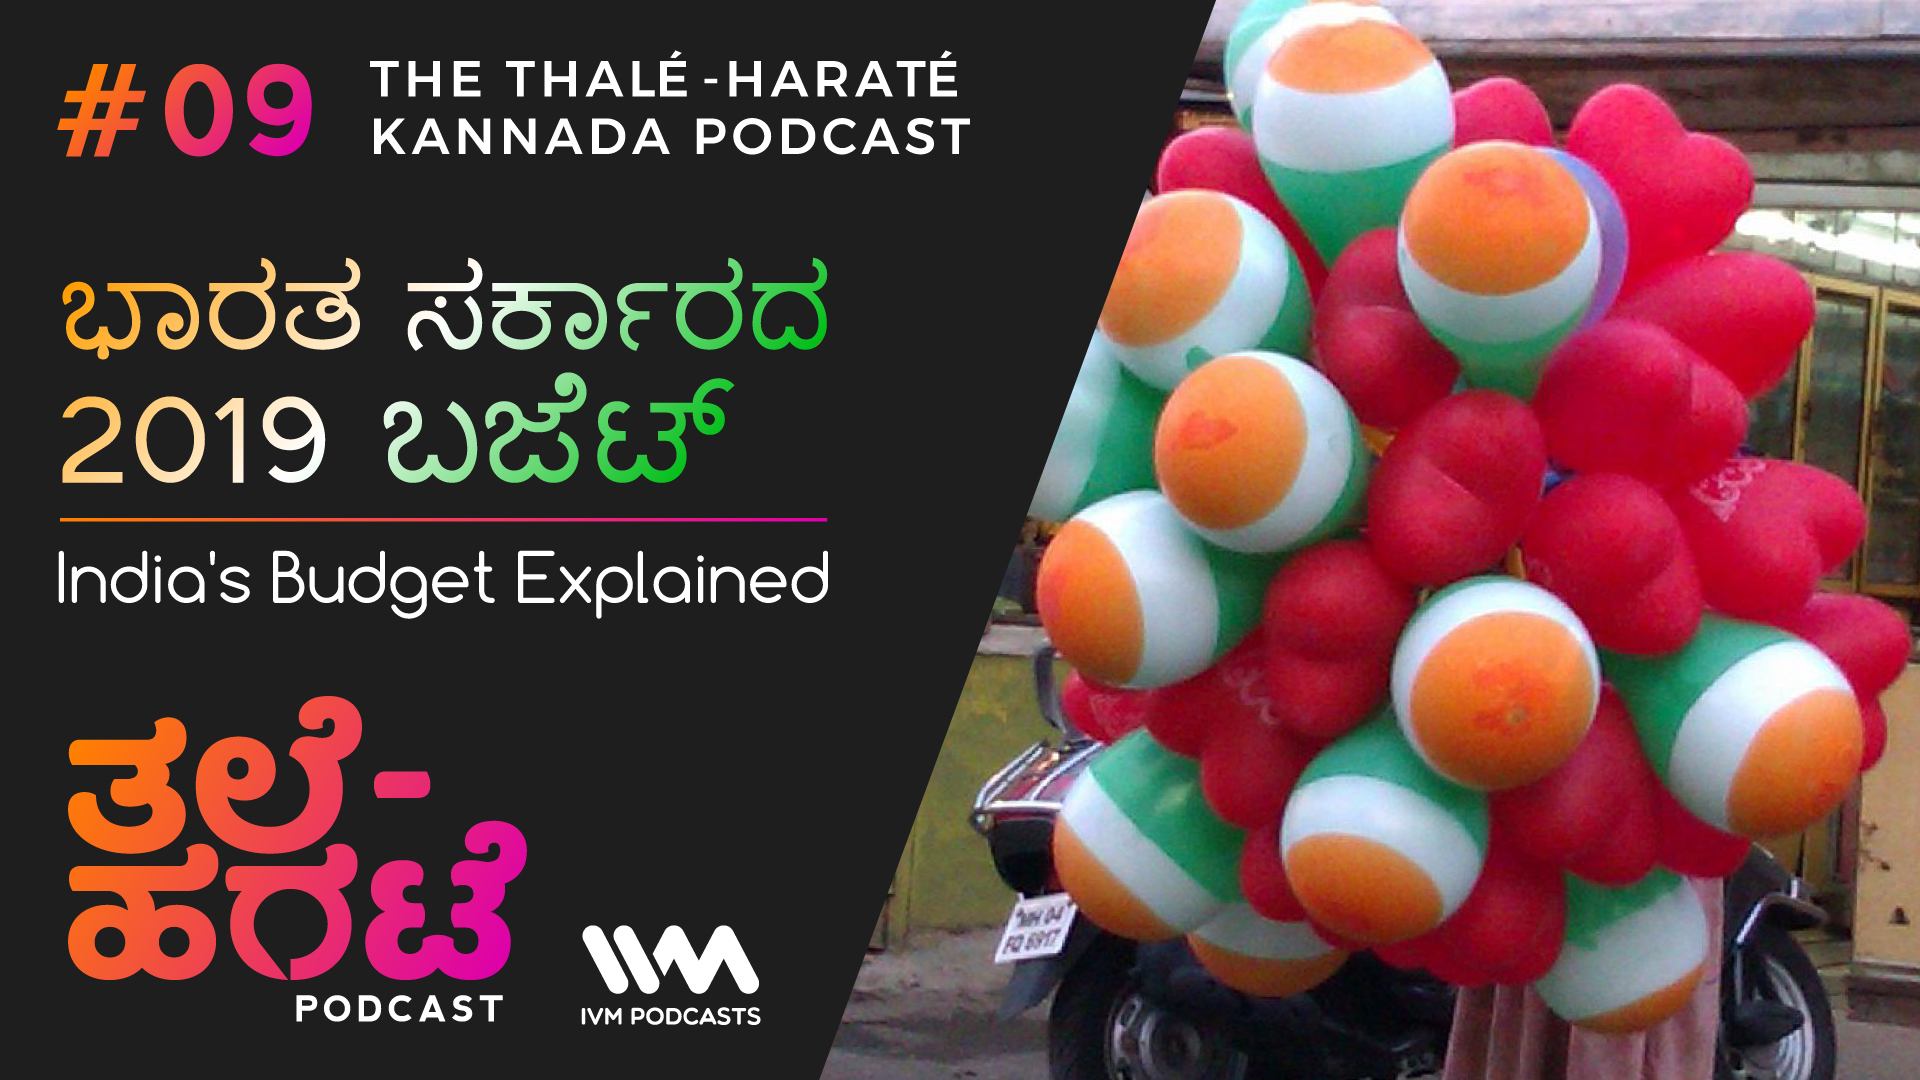 ThaleHarateEpisode09.jpg